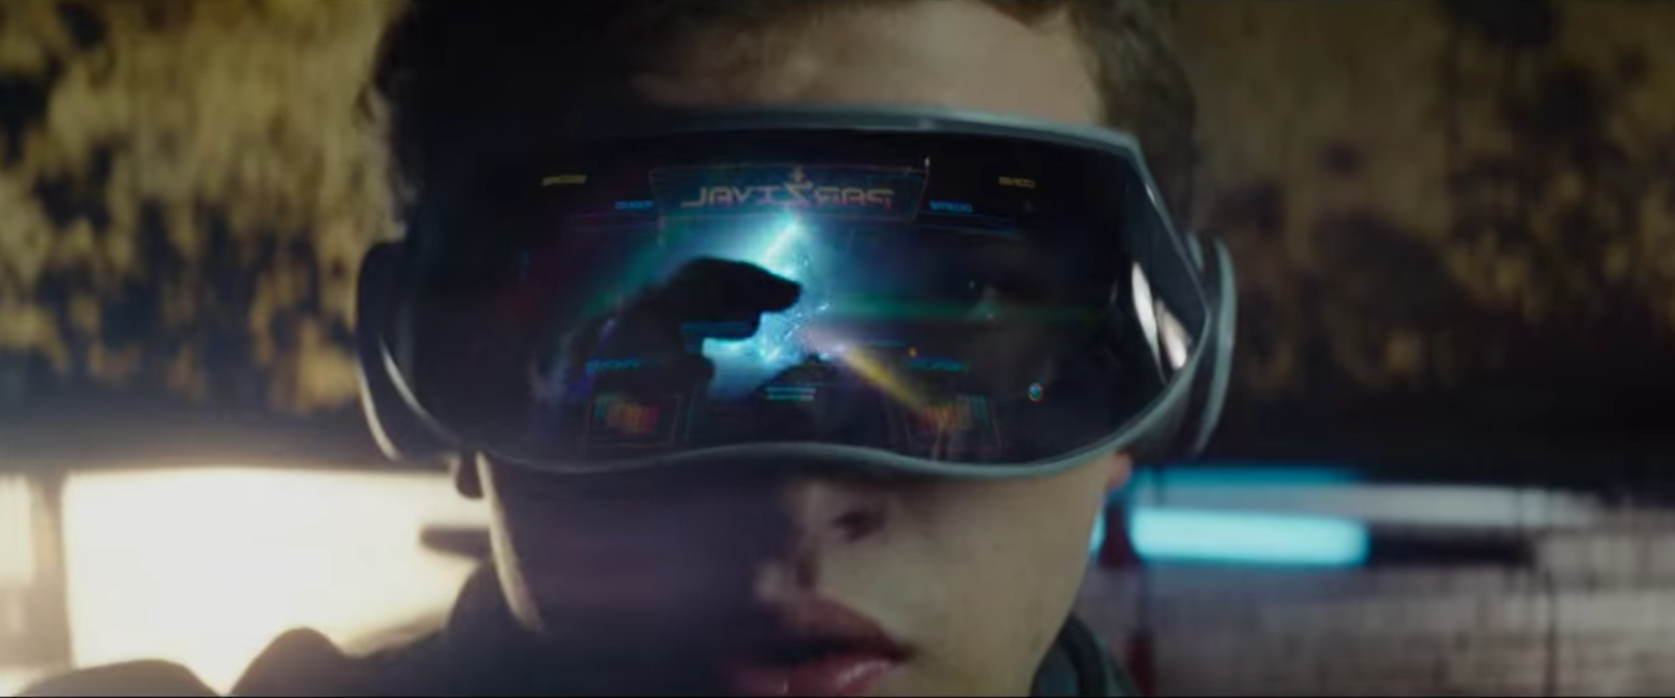 Ready Player One - referencia